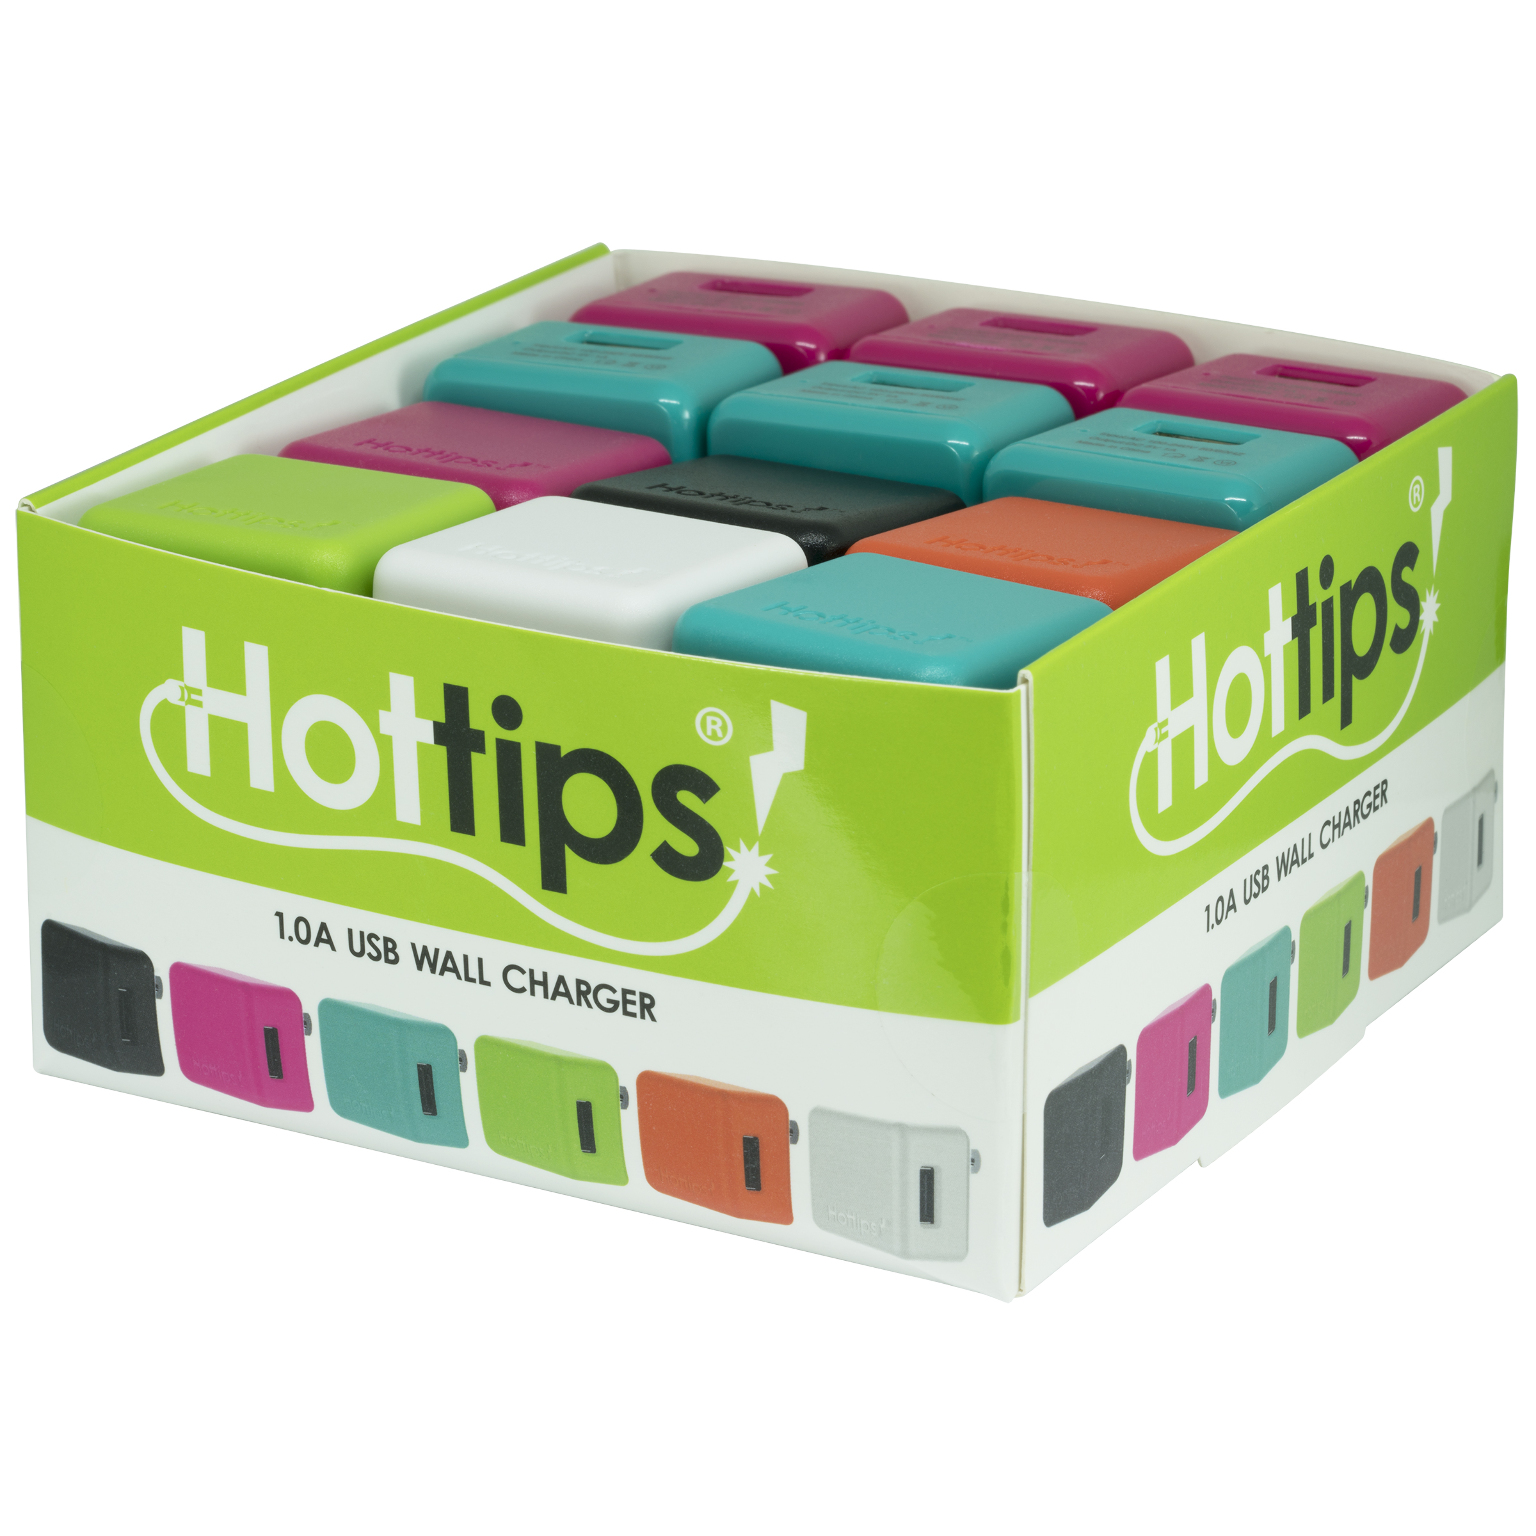 Hottips Tray Pack 1.0A Wall Charger- 24-count [1876770]